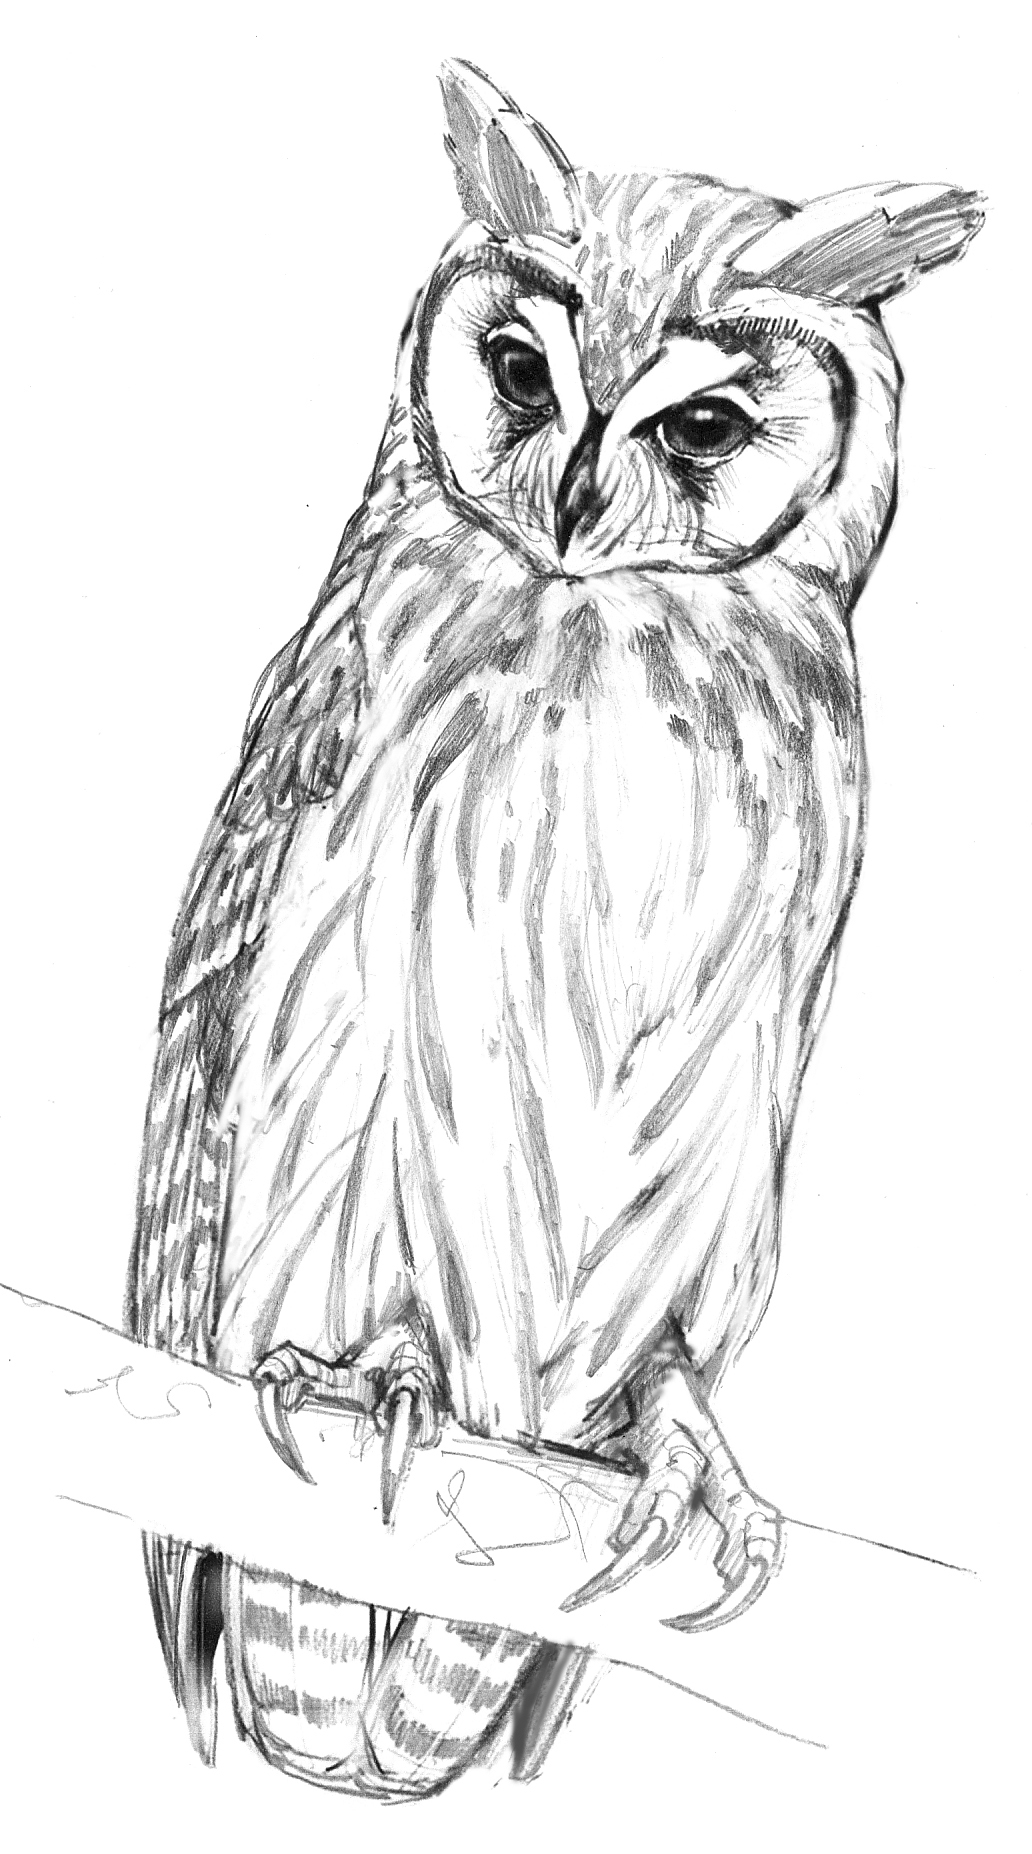 Moonchild: Striped Owls / Source Material